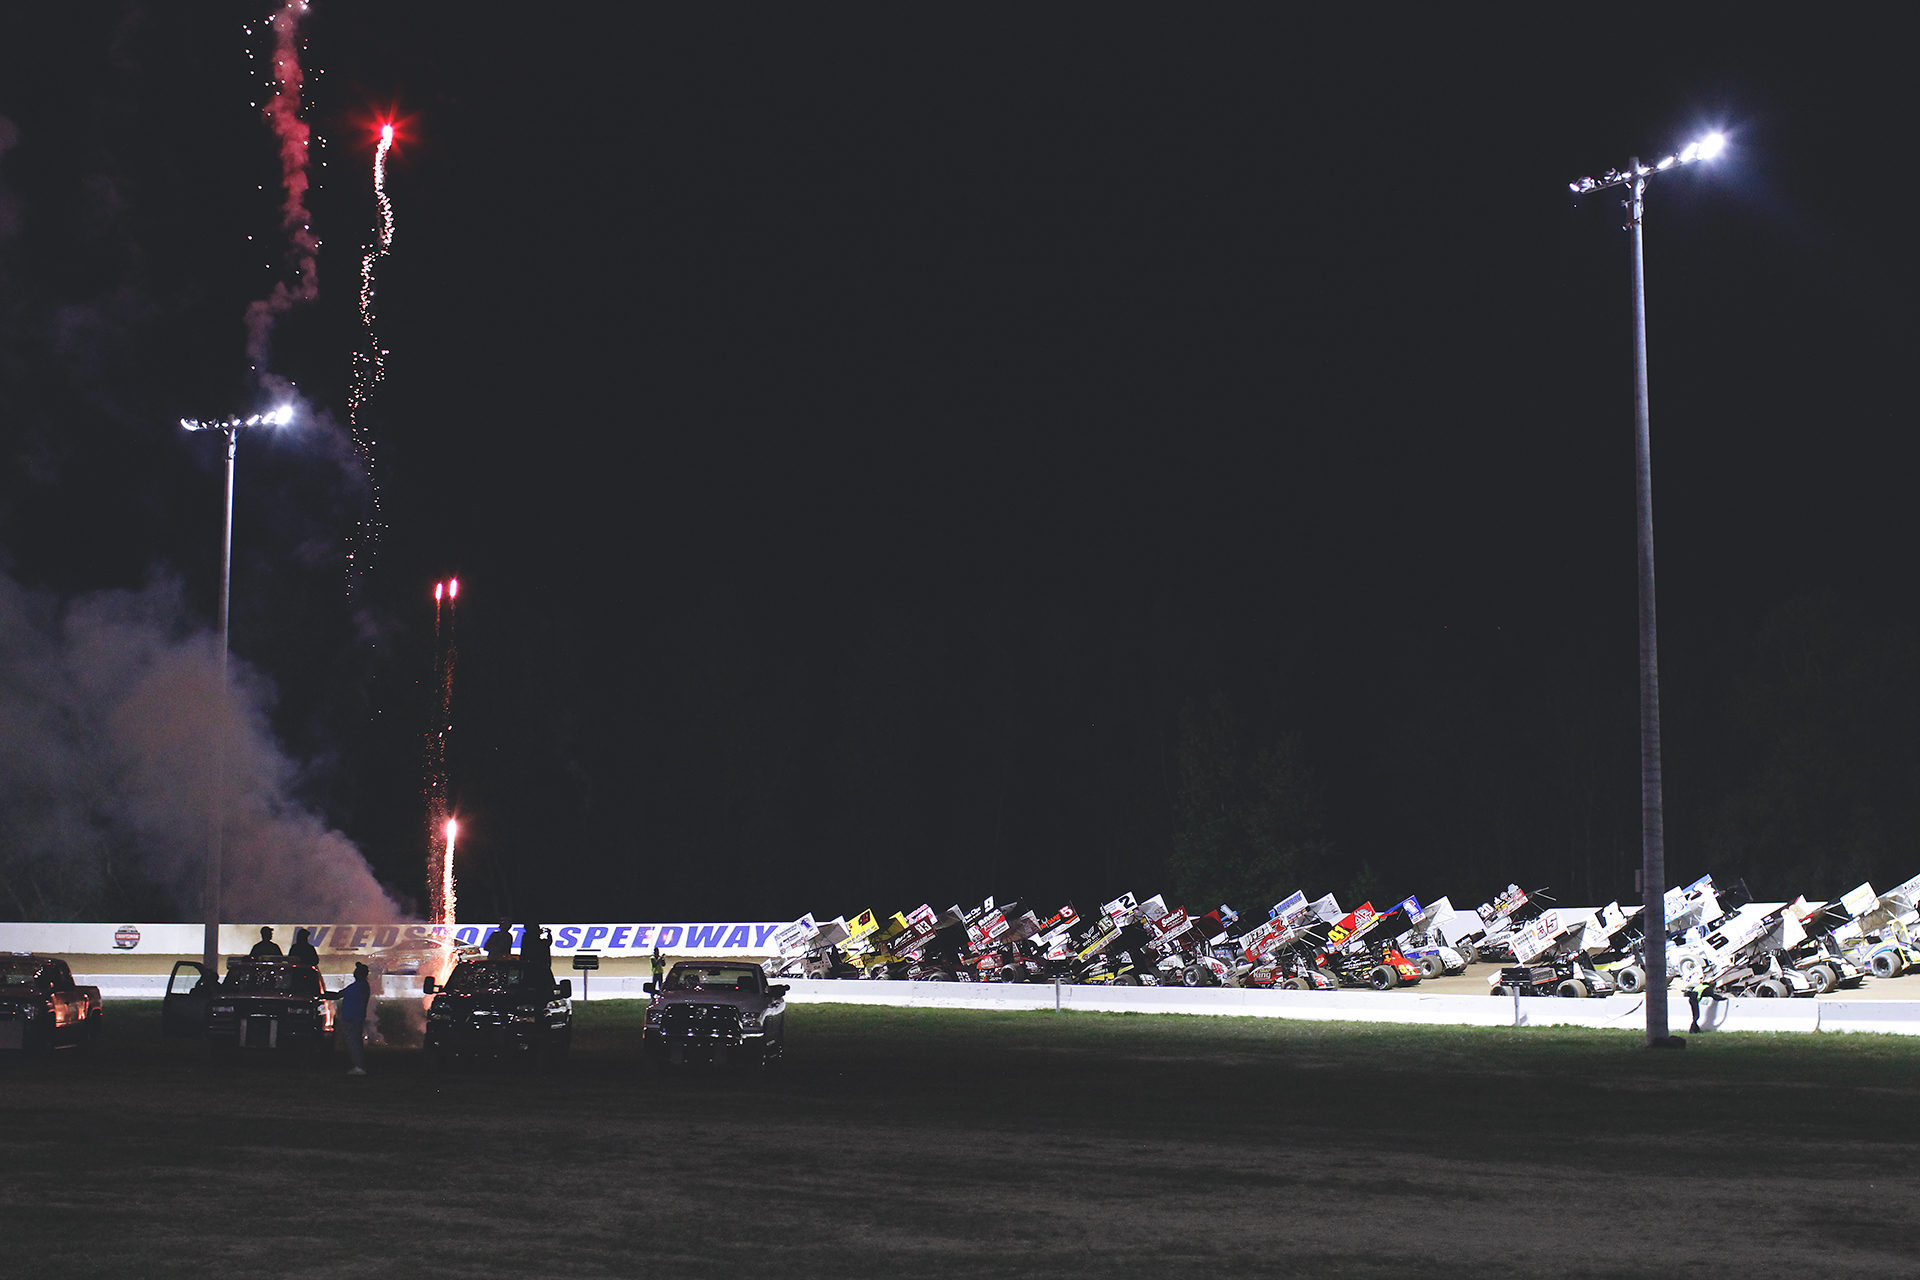 The World of Outlaws 4-wide salute to the fans at Weedsport. ( Jeffrey Turford / TDP )